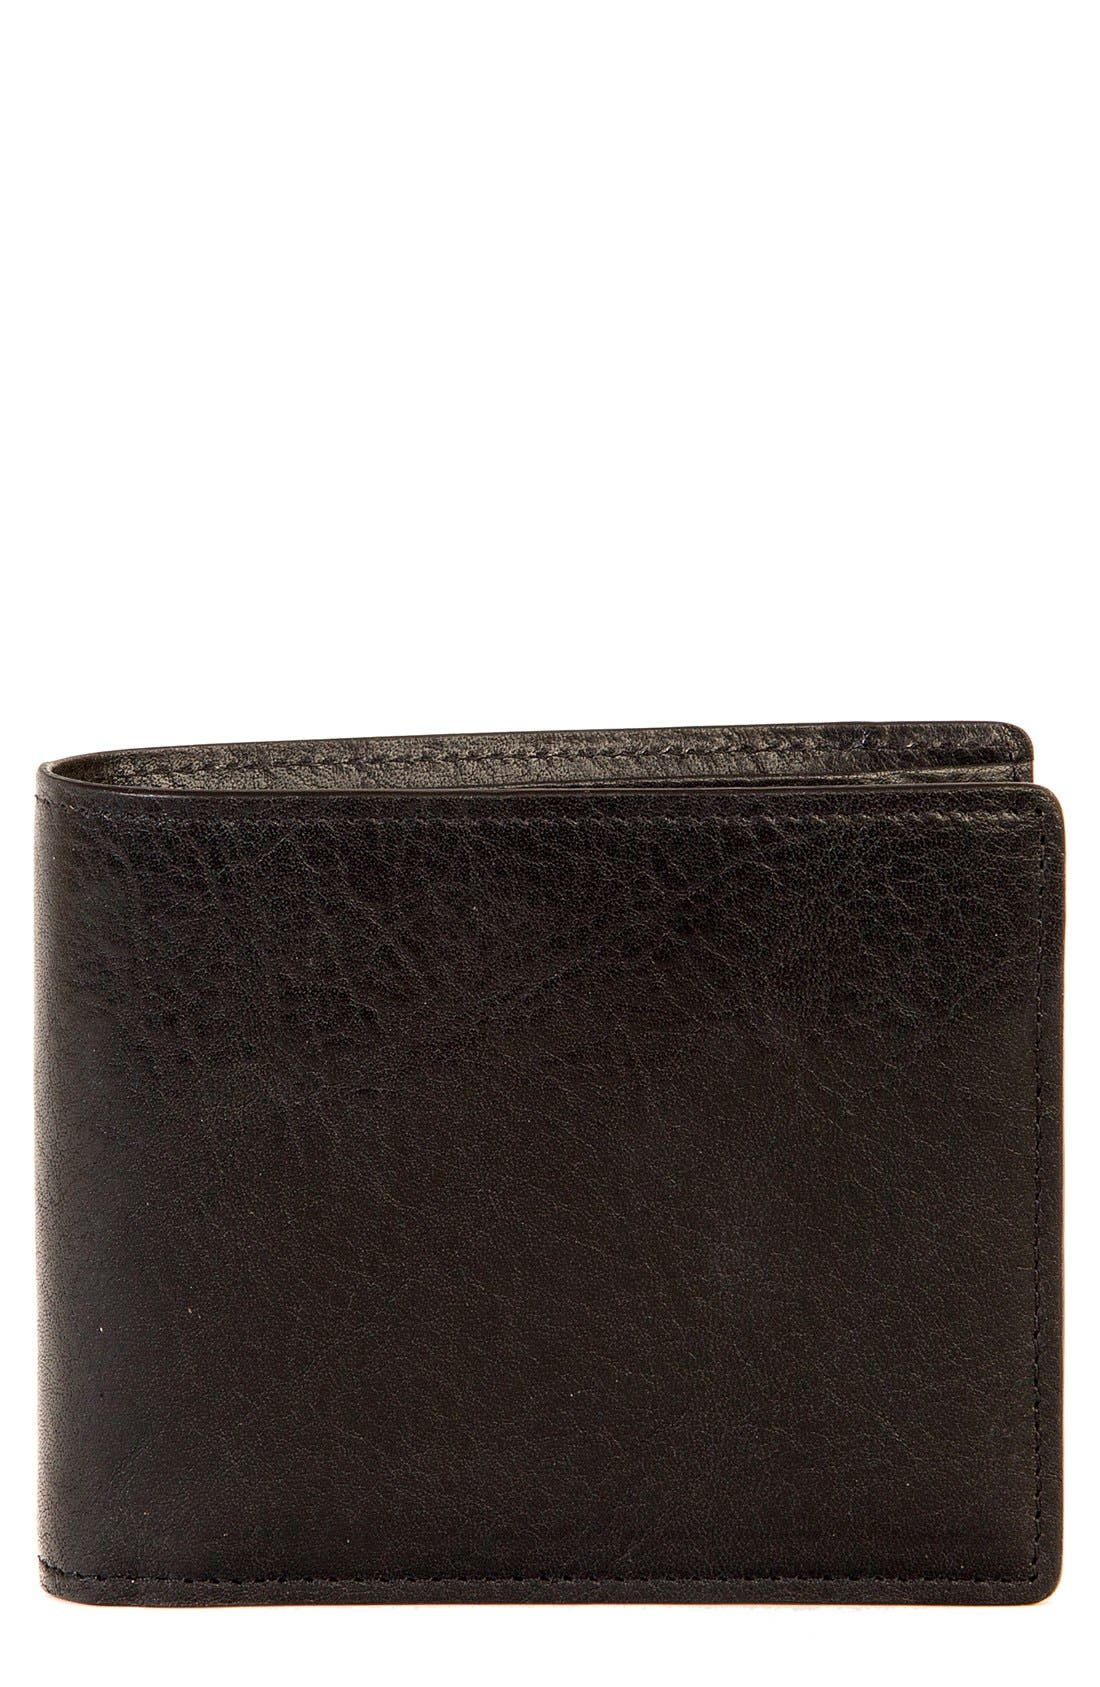 'Becker' RFID Leather Wallet,                             Main thumbnail 1, color,                             001